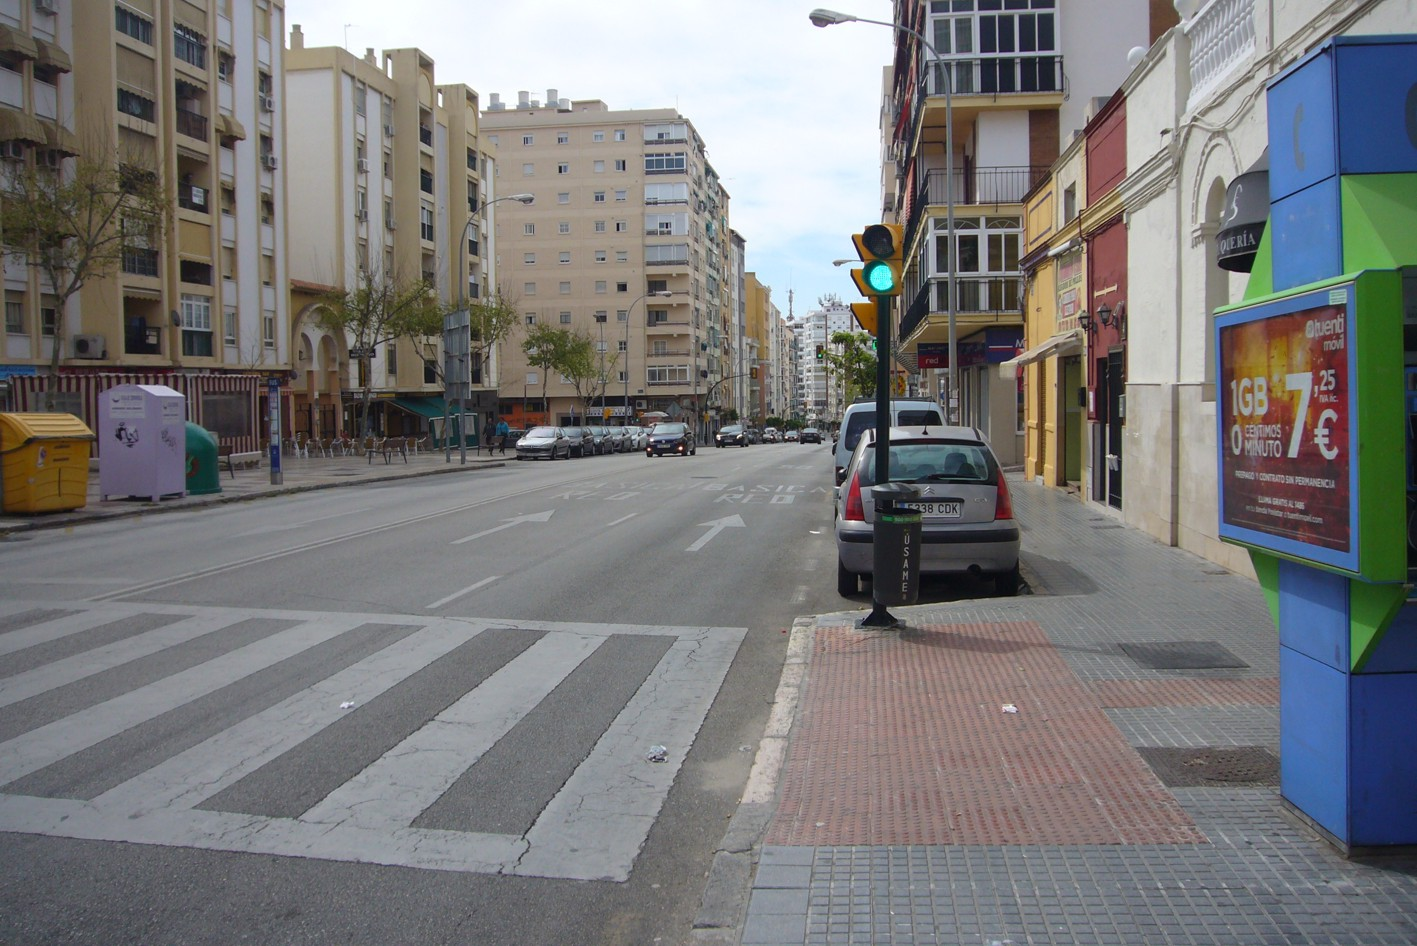 Calle Eugenio Gross en la prolongaci�n del metro hacia el Hospital Civil de M�laga.